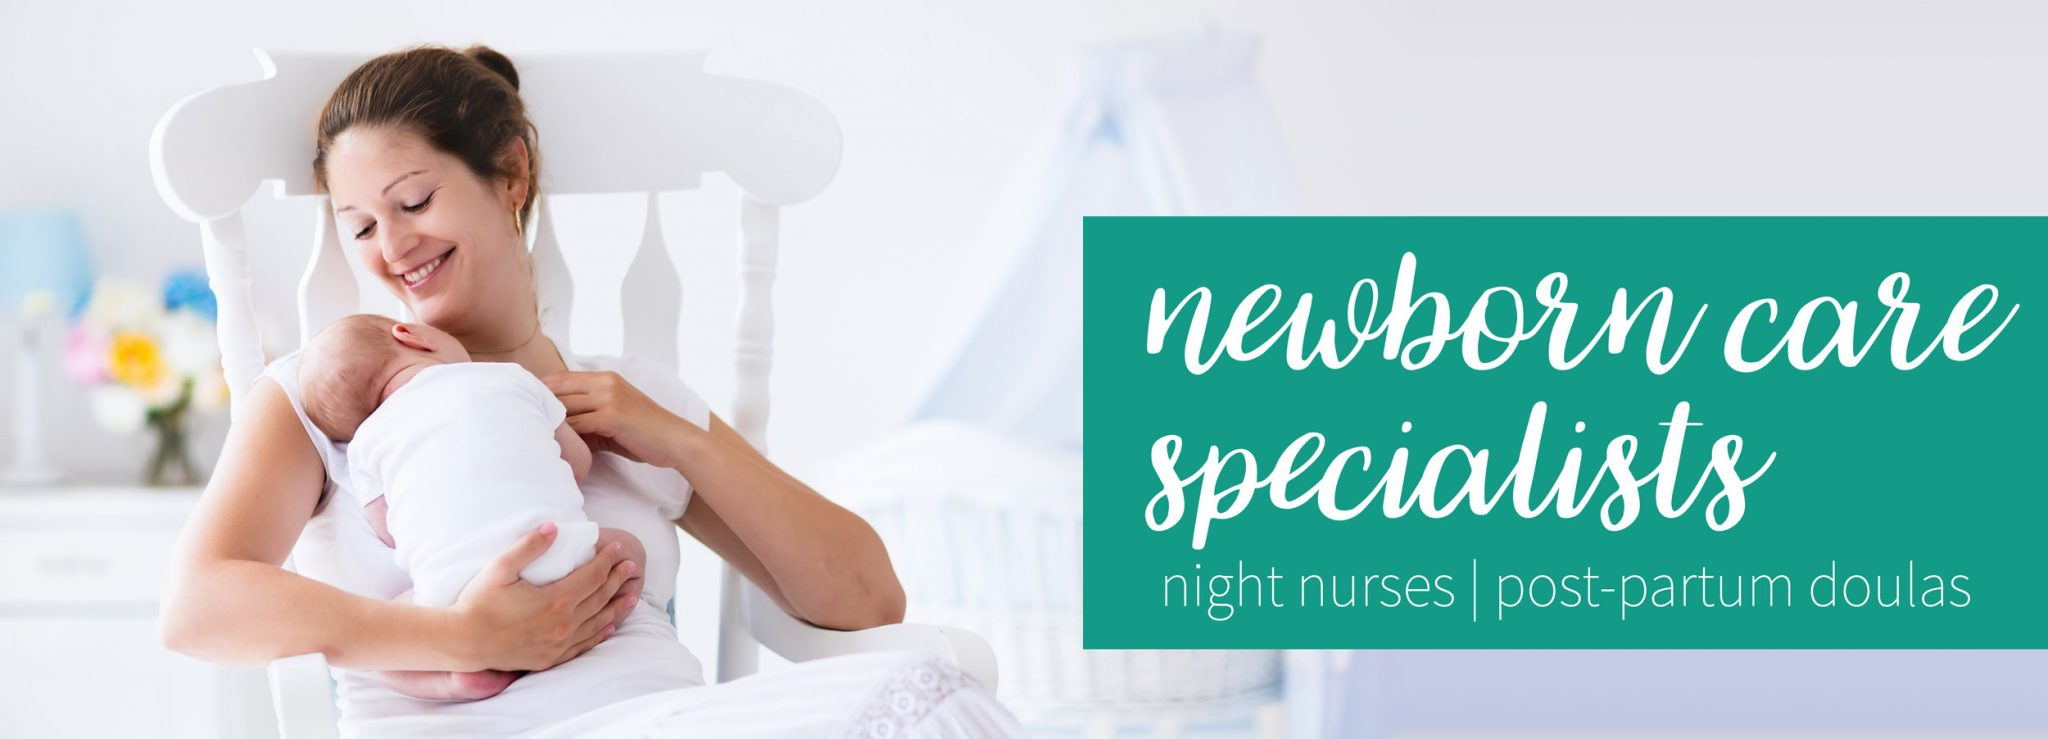 Newborn Care Specialist (NCS), Night Nurses, Baby Nurses, and Postpartum Doula placement services from Capitol Park Nannies, Sacramento-based Nanny Agency